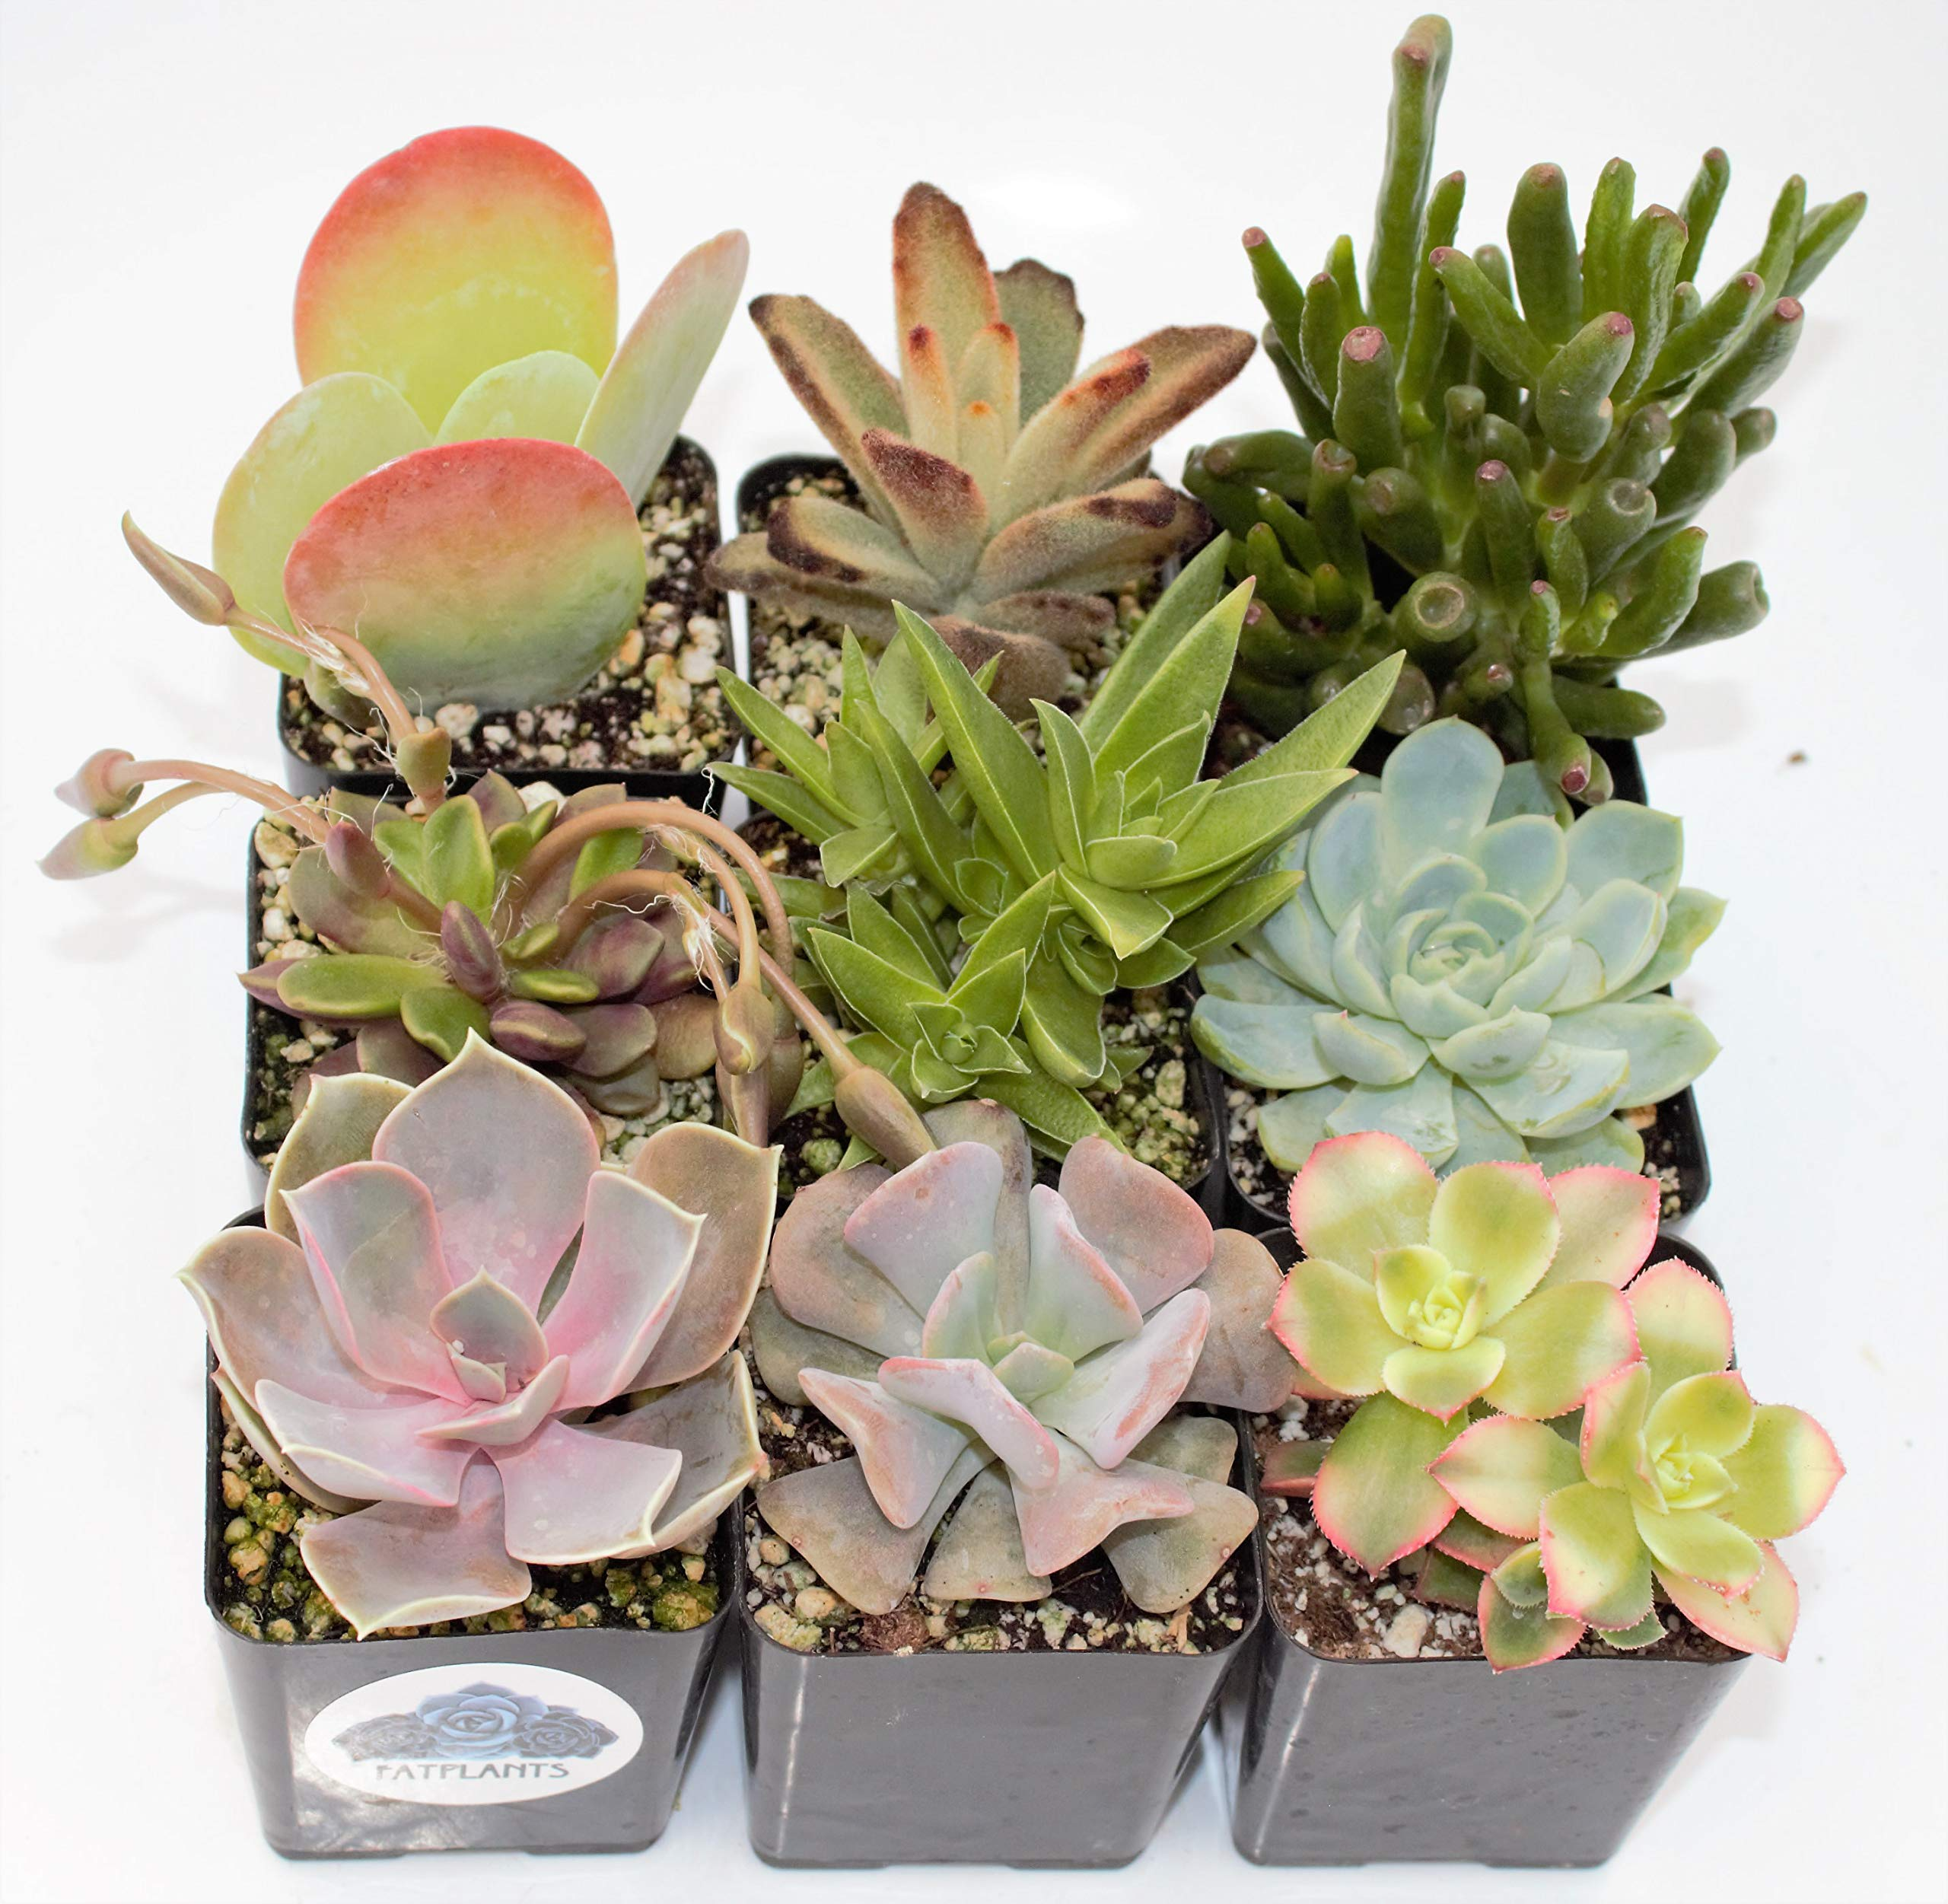 Fat Plants San Diego Premium Succulent Plant Variety Package. Live Indoor Succulents Rooted in Soil in a Plastic Growers Pot (9)